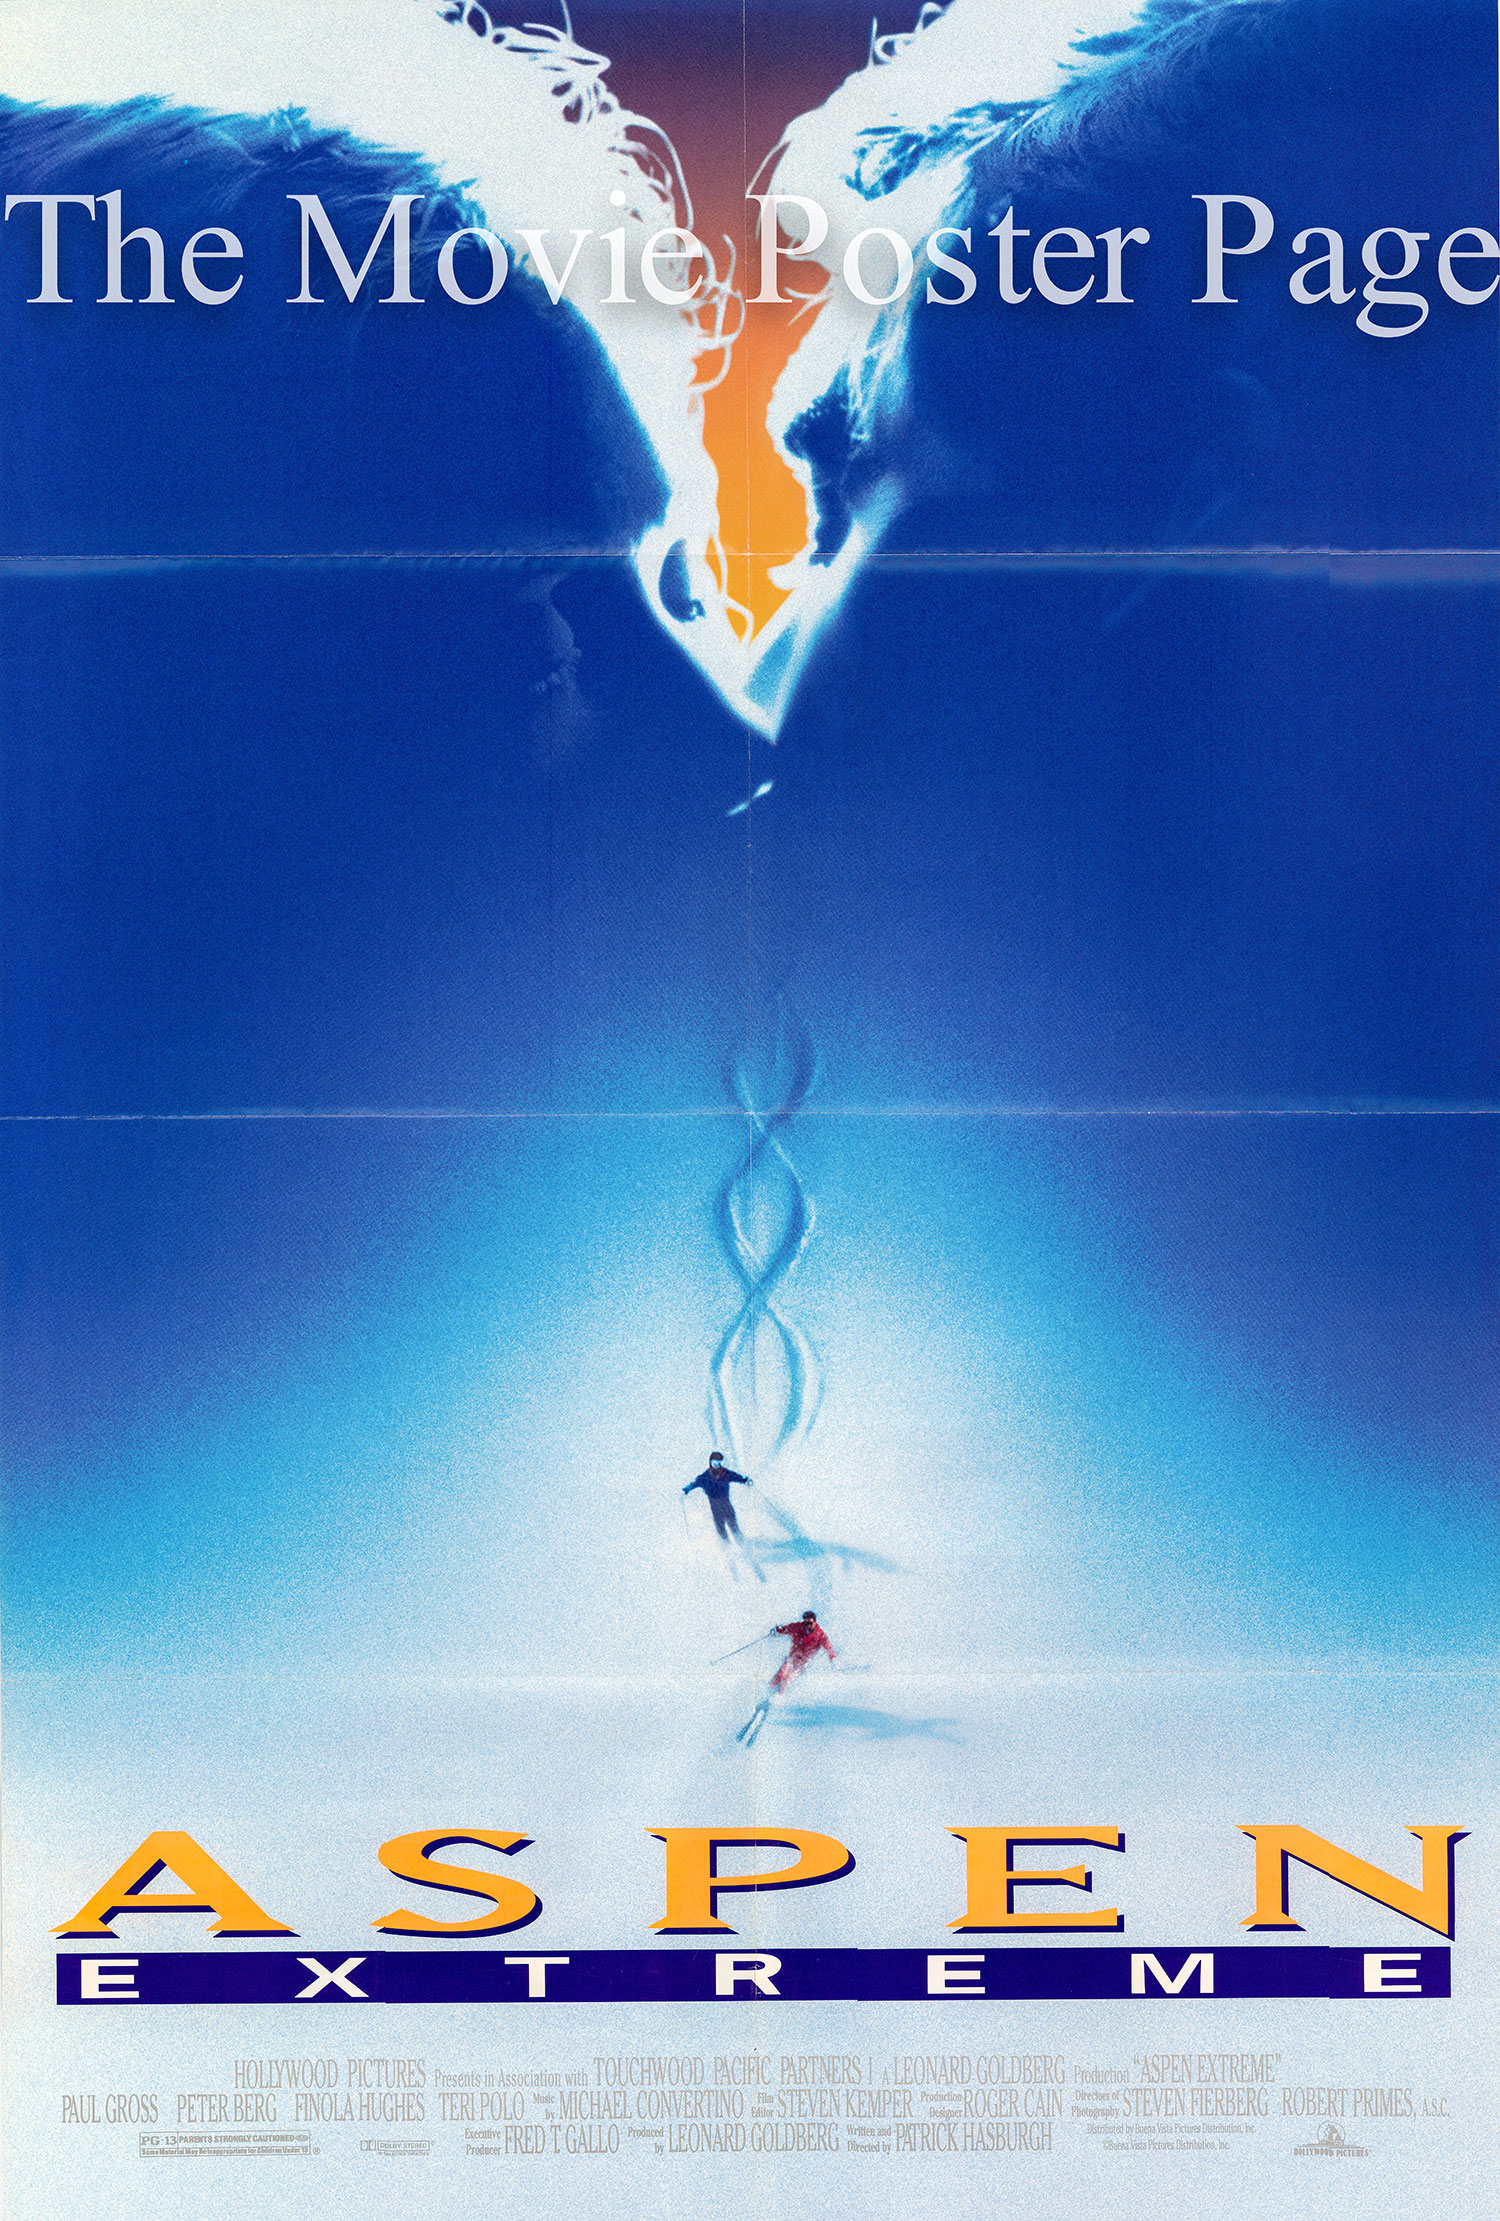 Pictured is a US one-sheet poster for the 1993 Paul Hasburgh film Aspen Extreme starring Paul Gross.